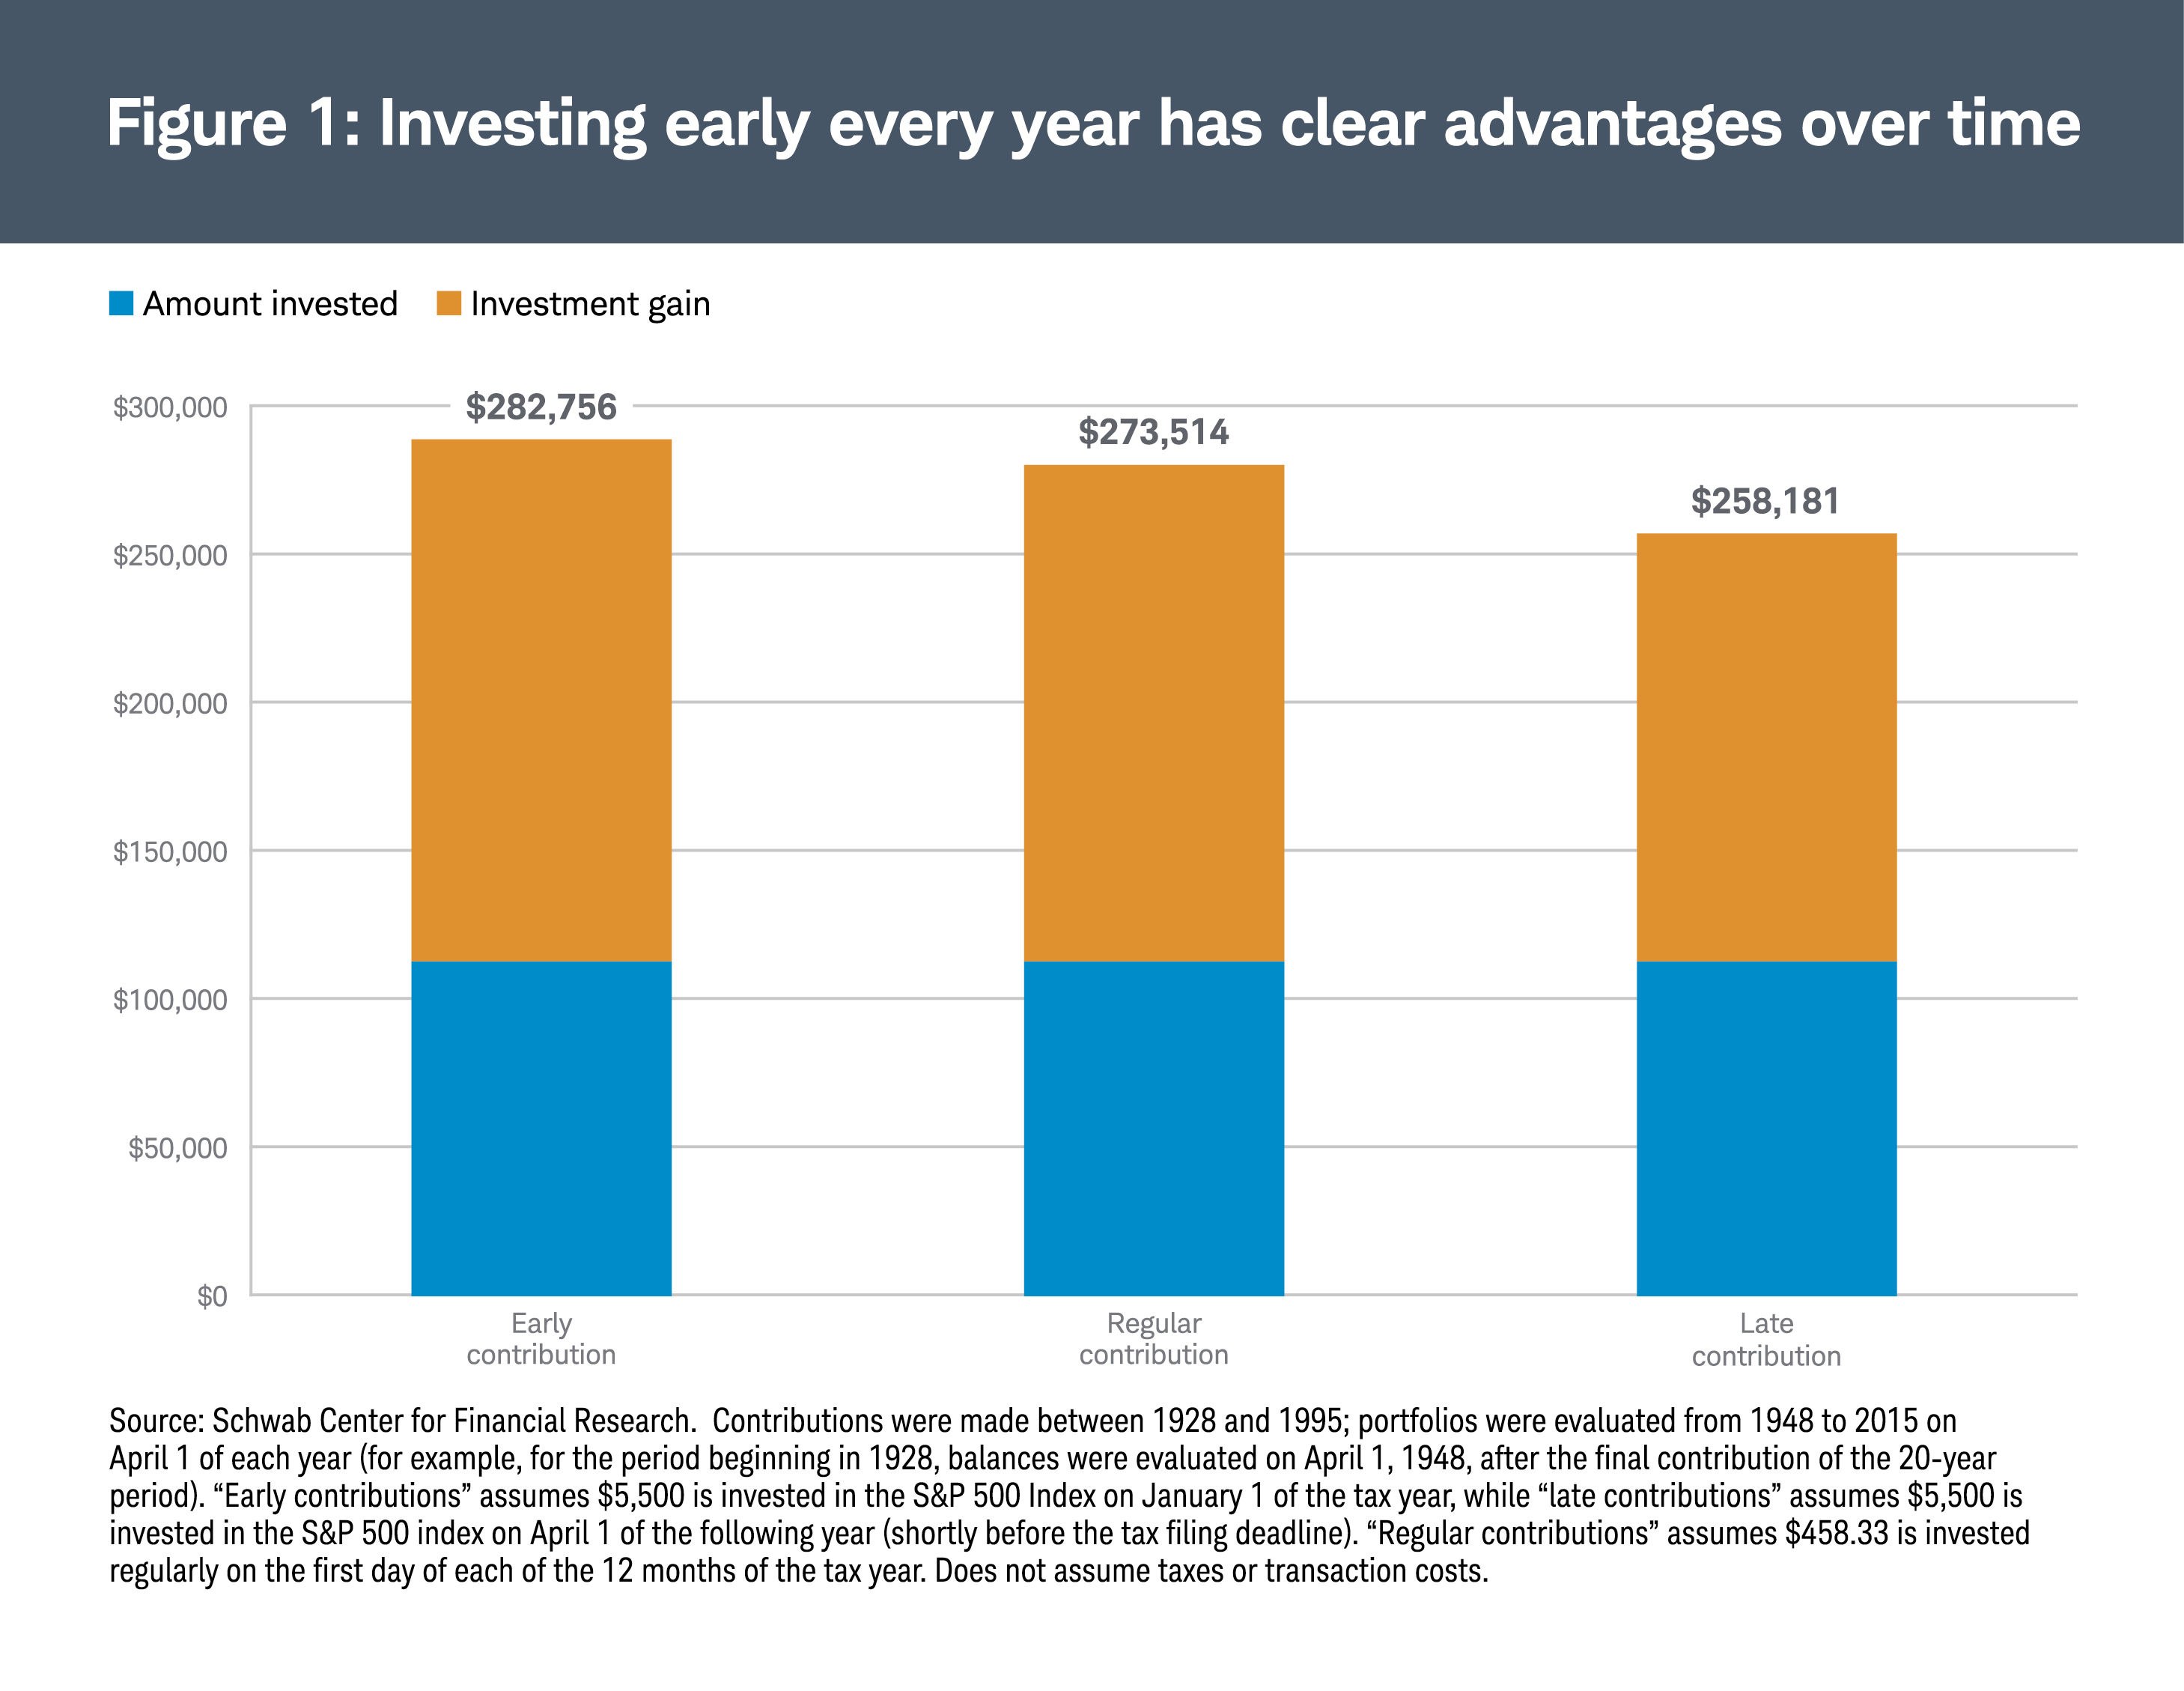 Investing early every year has clear advantages over time